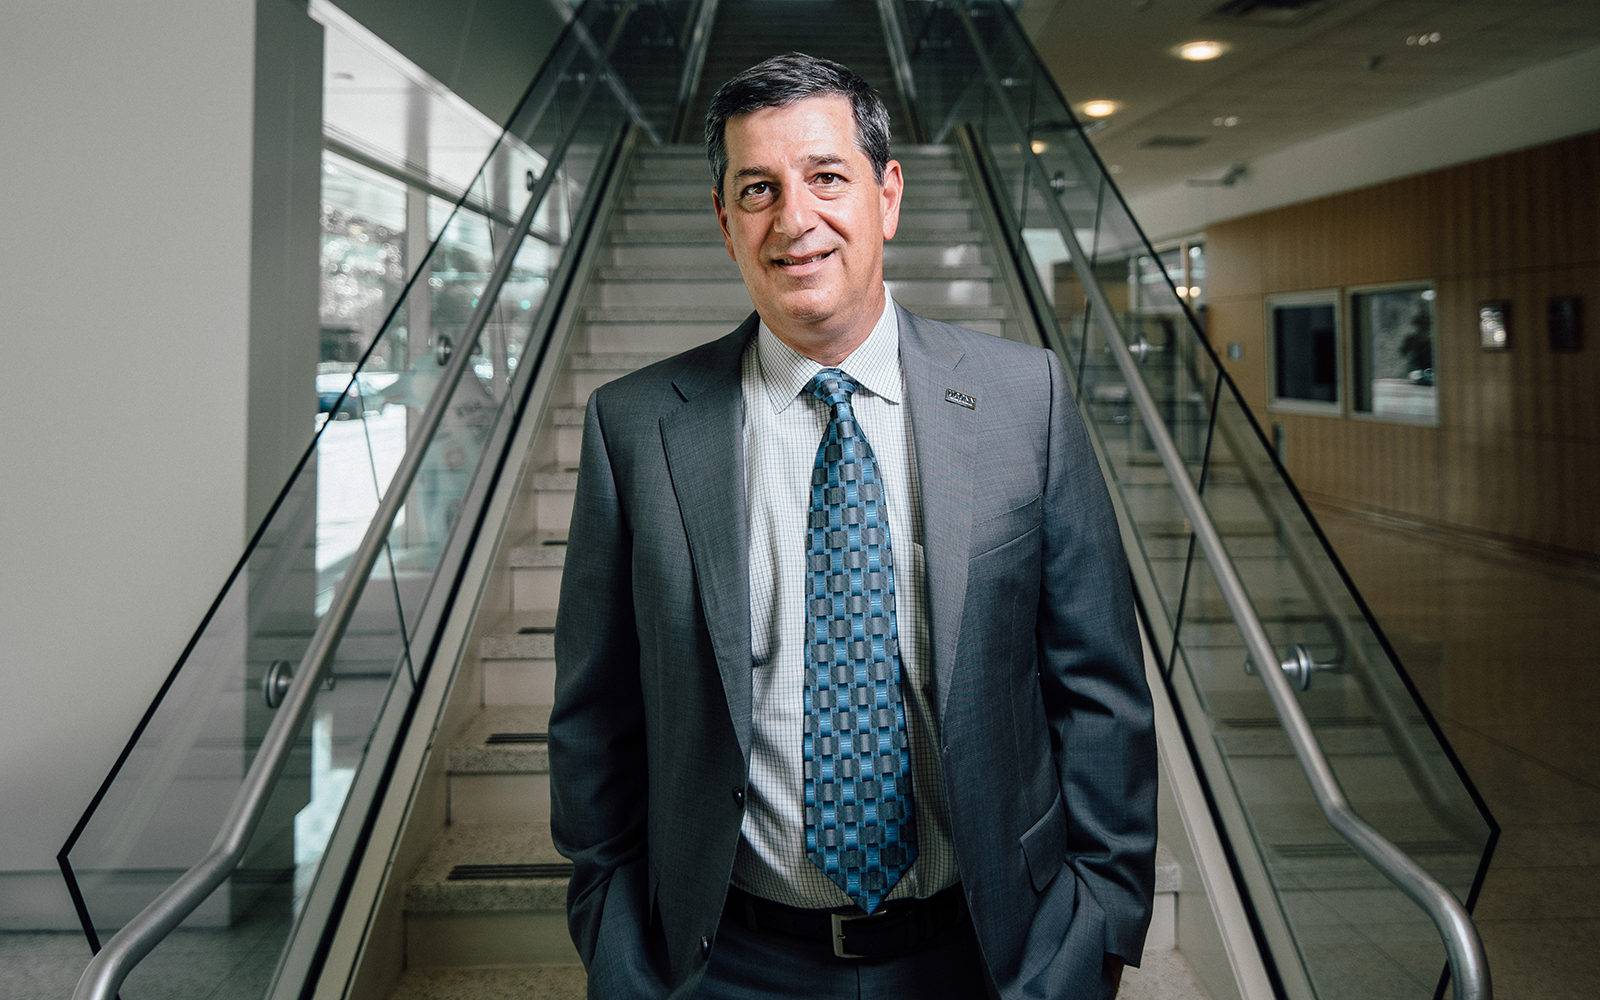 Former Walmart CEO Bill Simon poses in front of an escalator in the UConn Stamford campus.